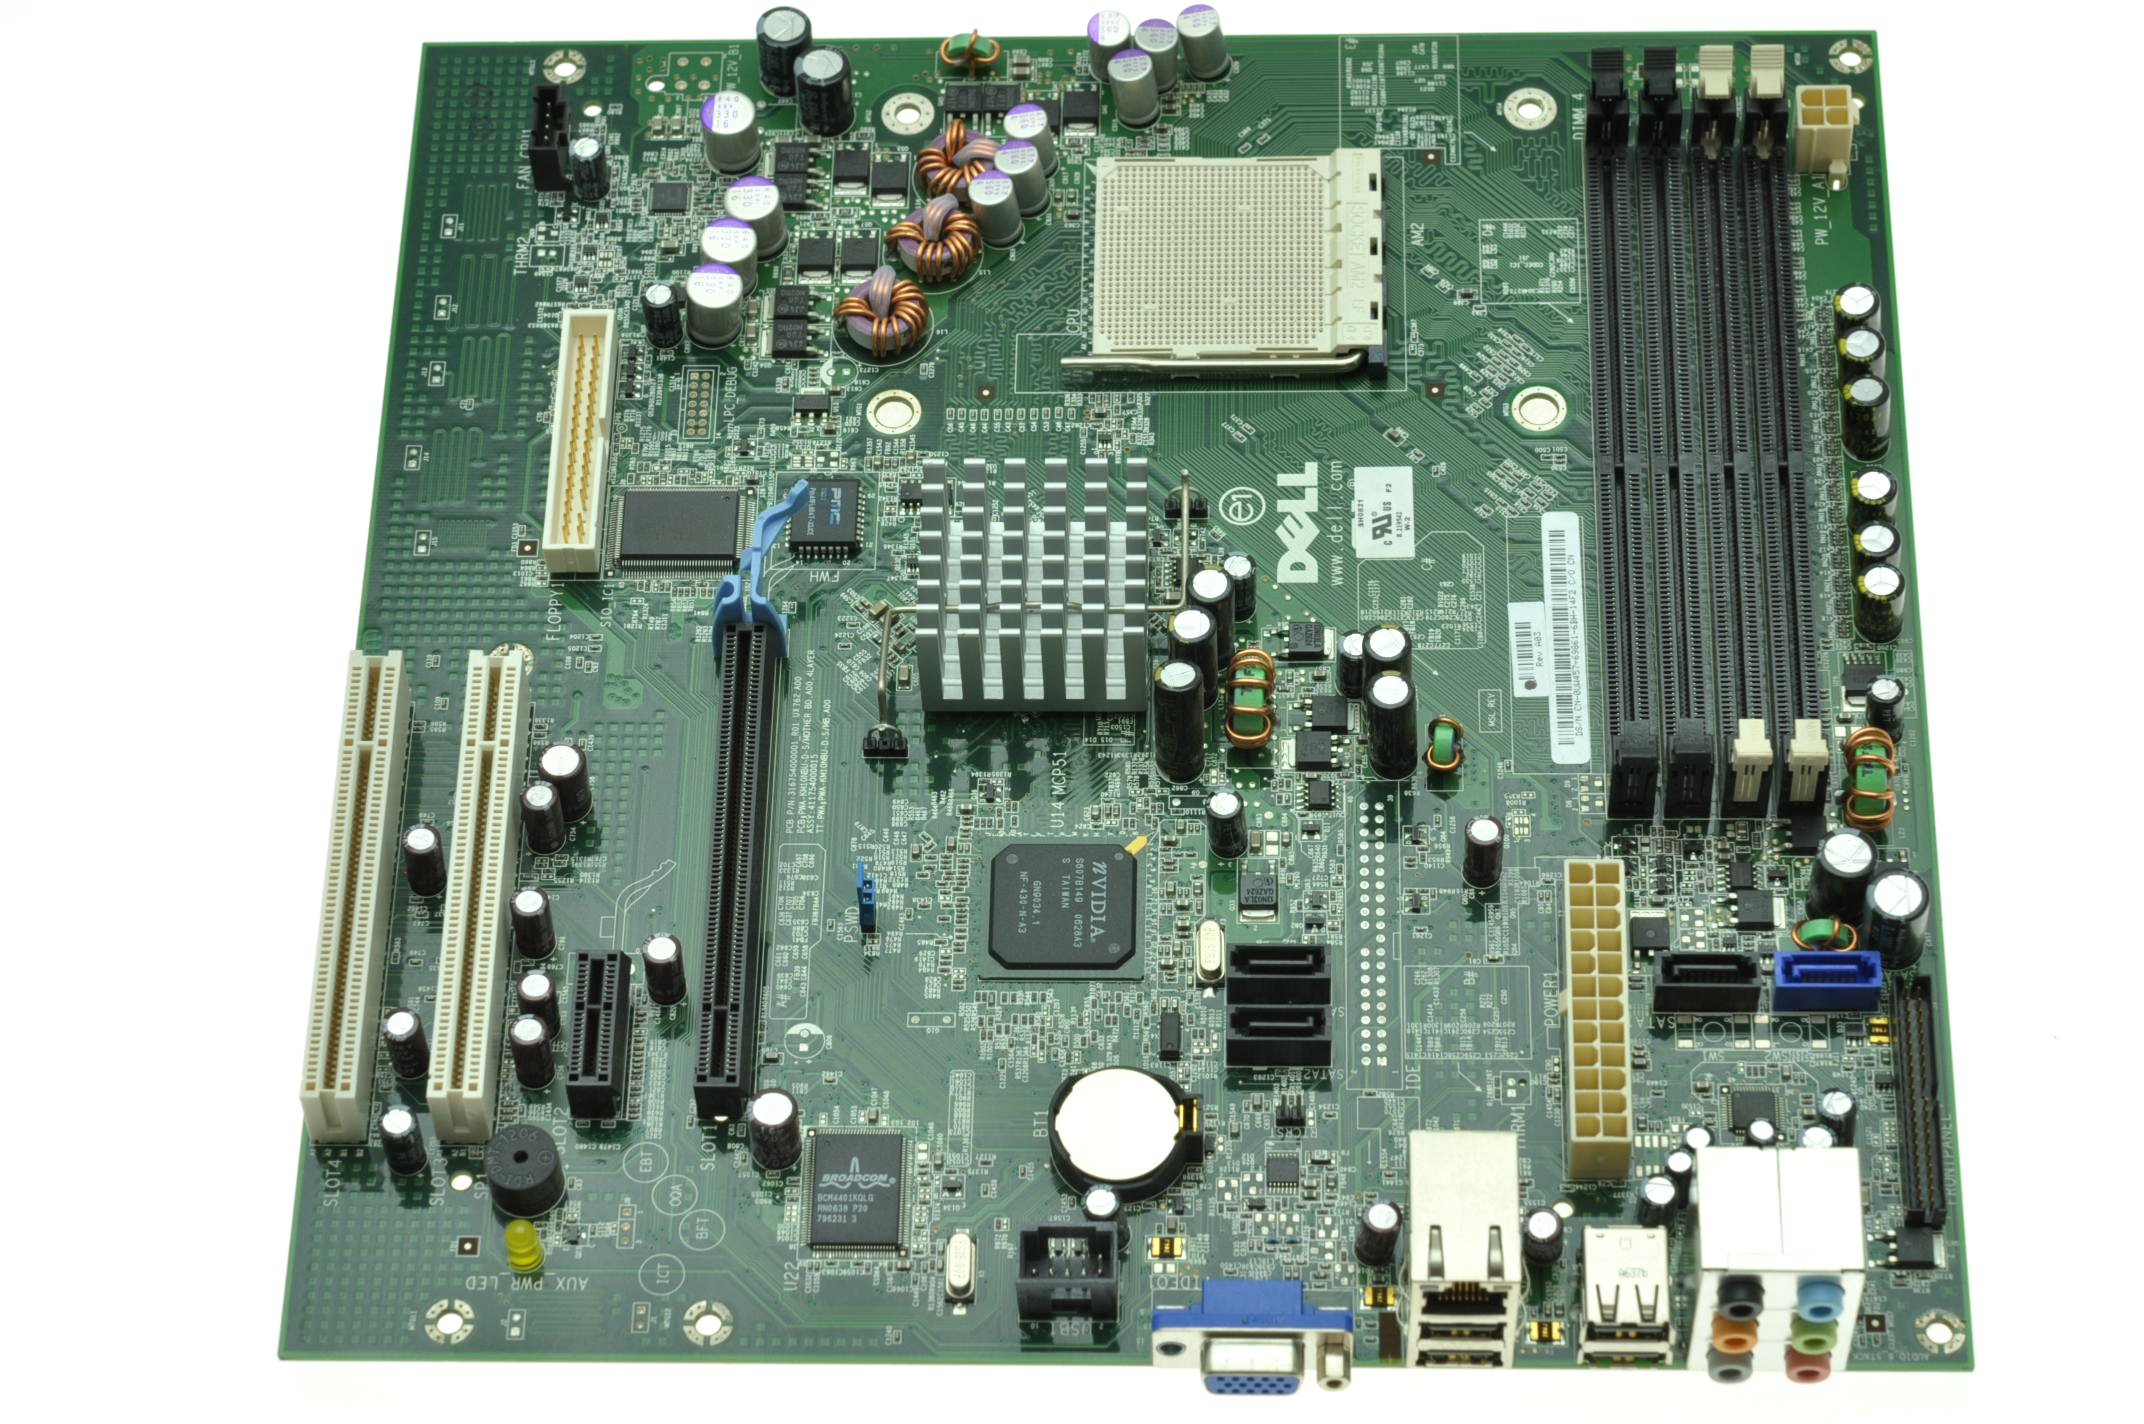 Dell Dimension E521 Drivers for Vista XP